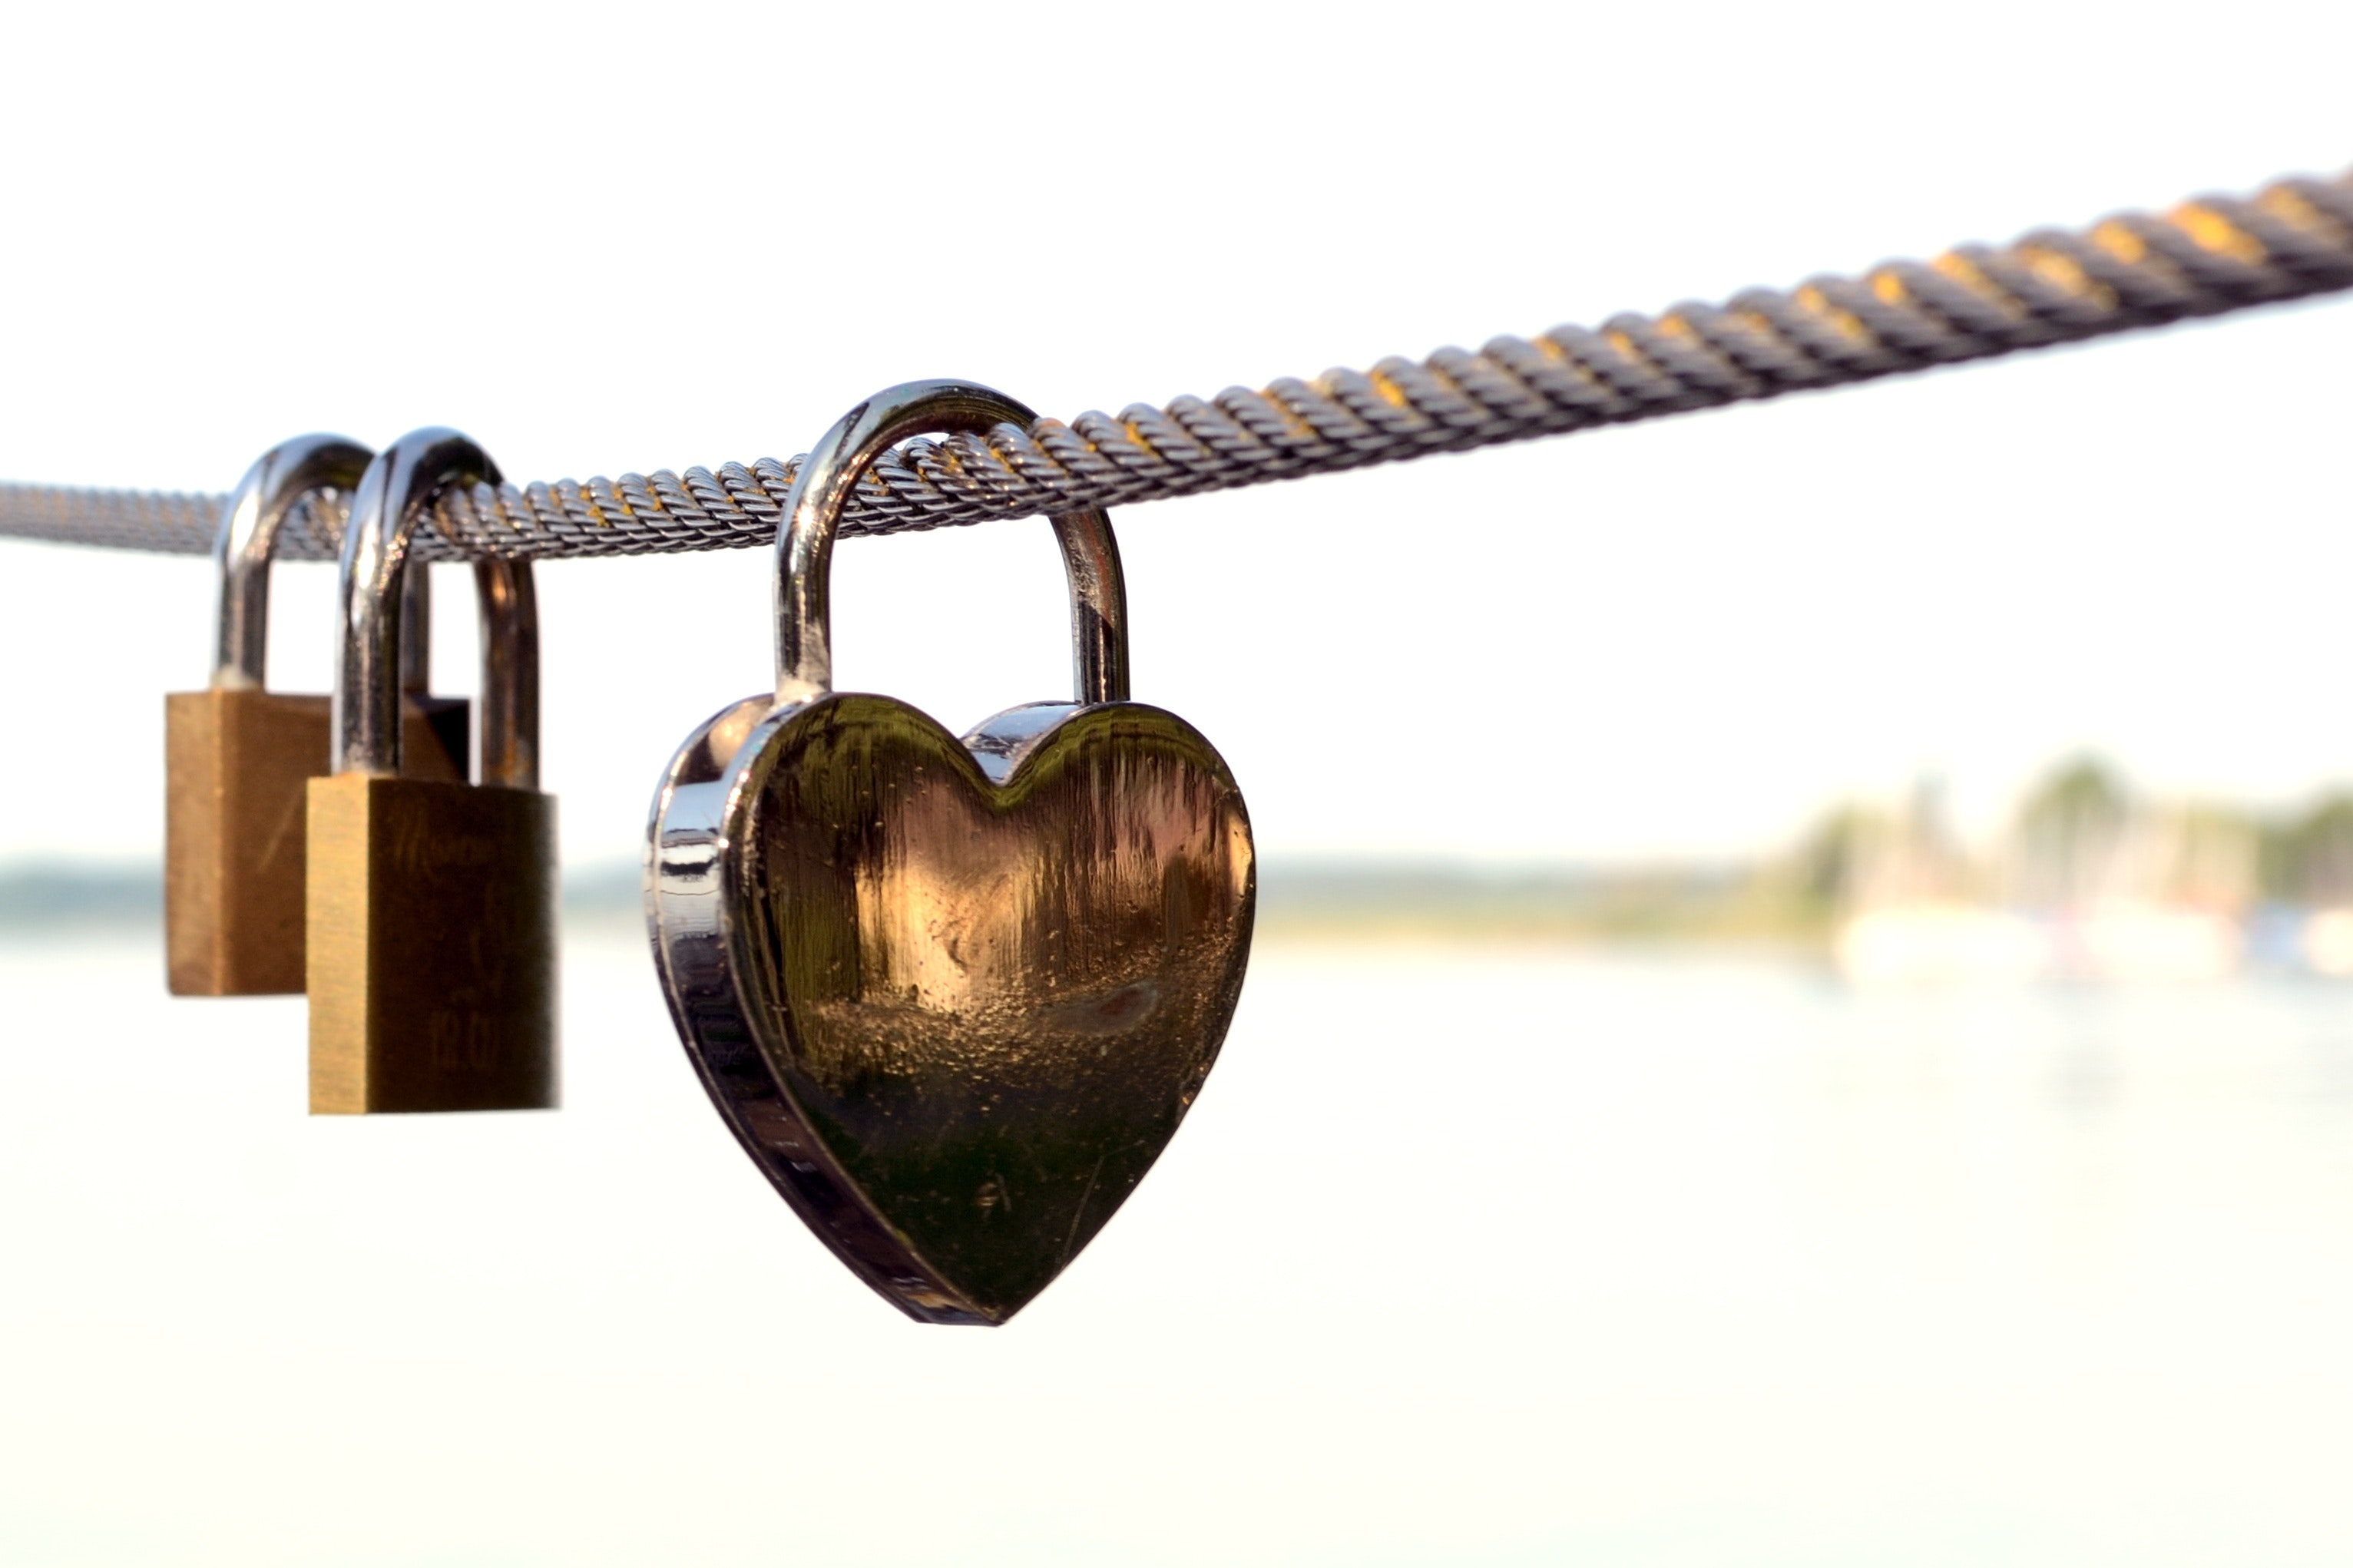 Close-up of Padlocks on Railing Against Sky, Affection, Love symbol, Security, Safety, HQ Photo